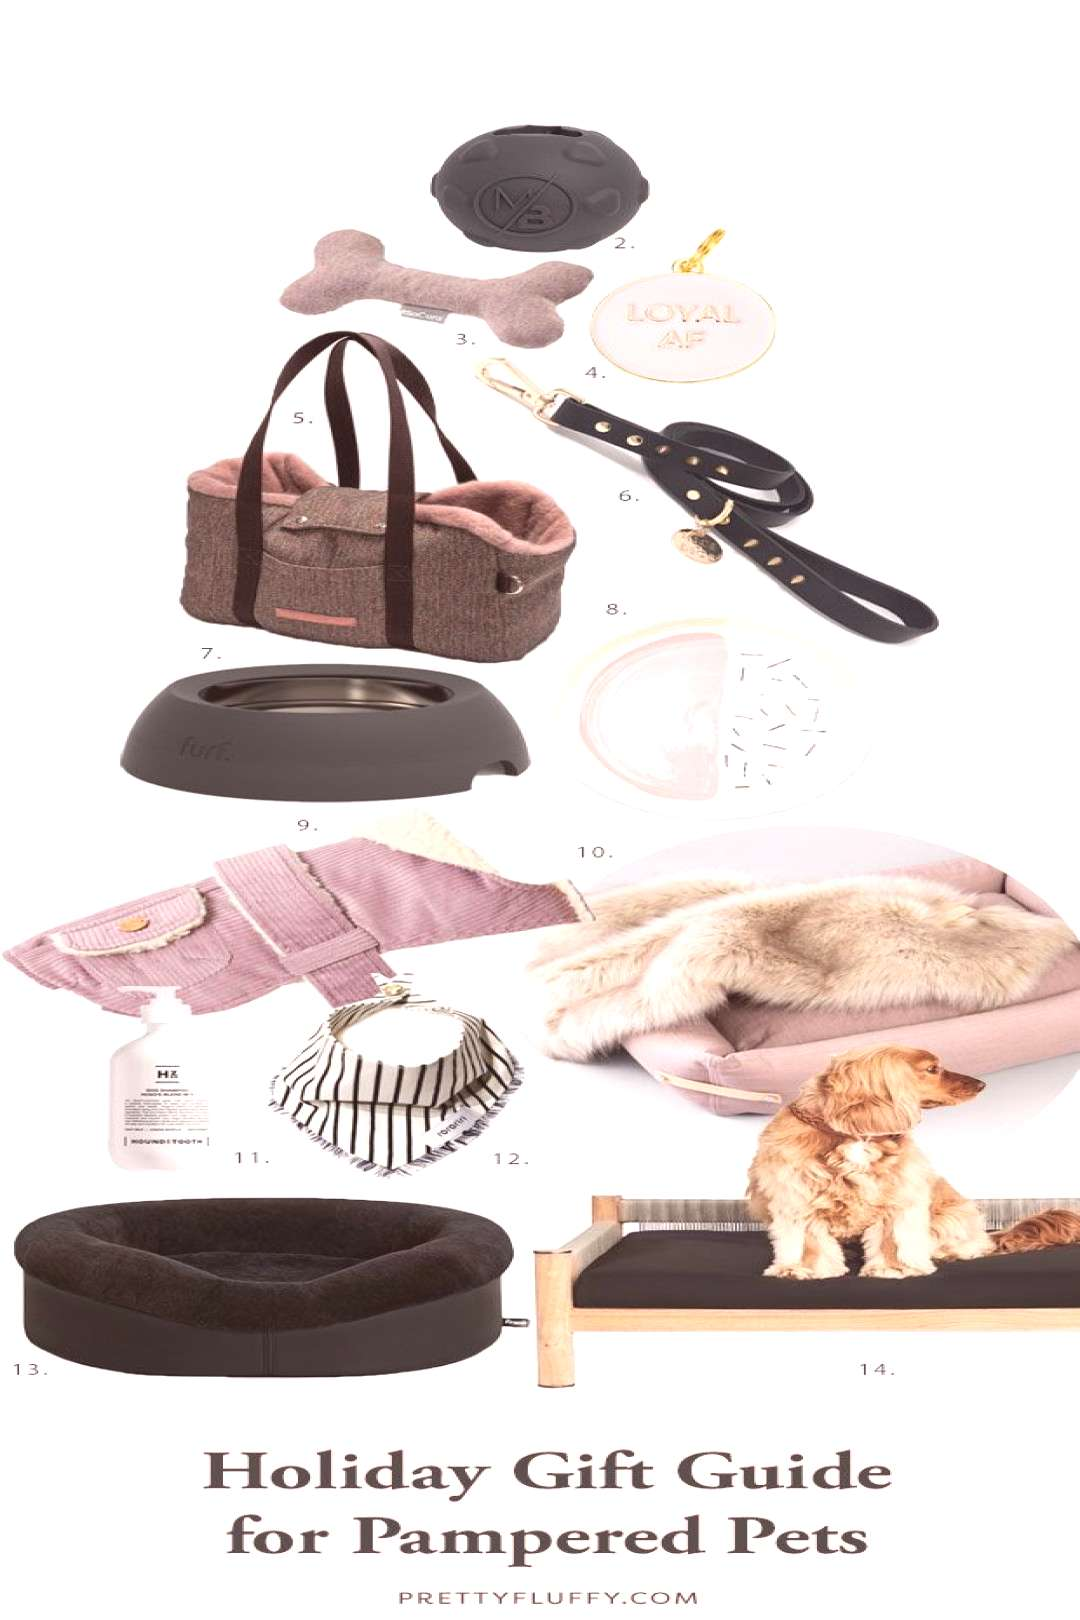 2019 Holiday Gift Guide for Pampered Pets - Pretty Fluffy The ultimate holiday gift guide for pampe